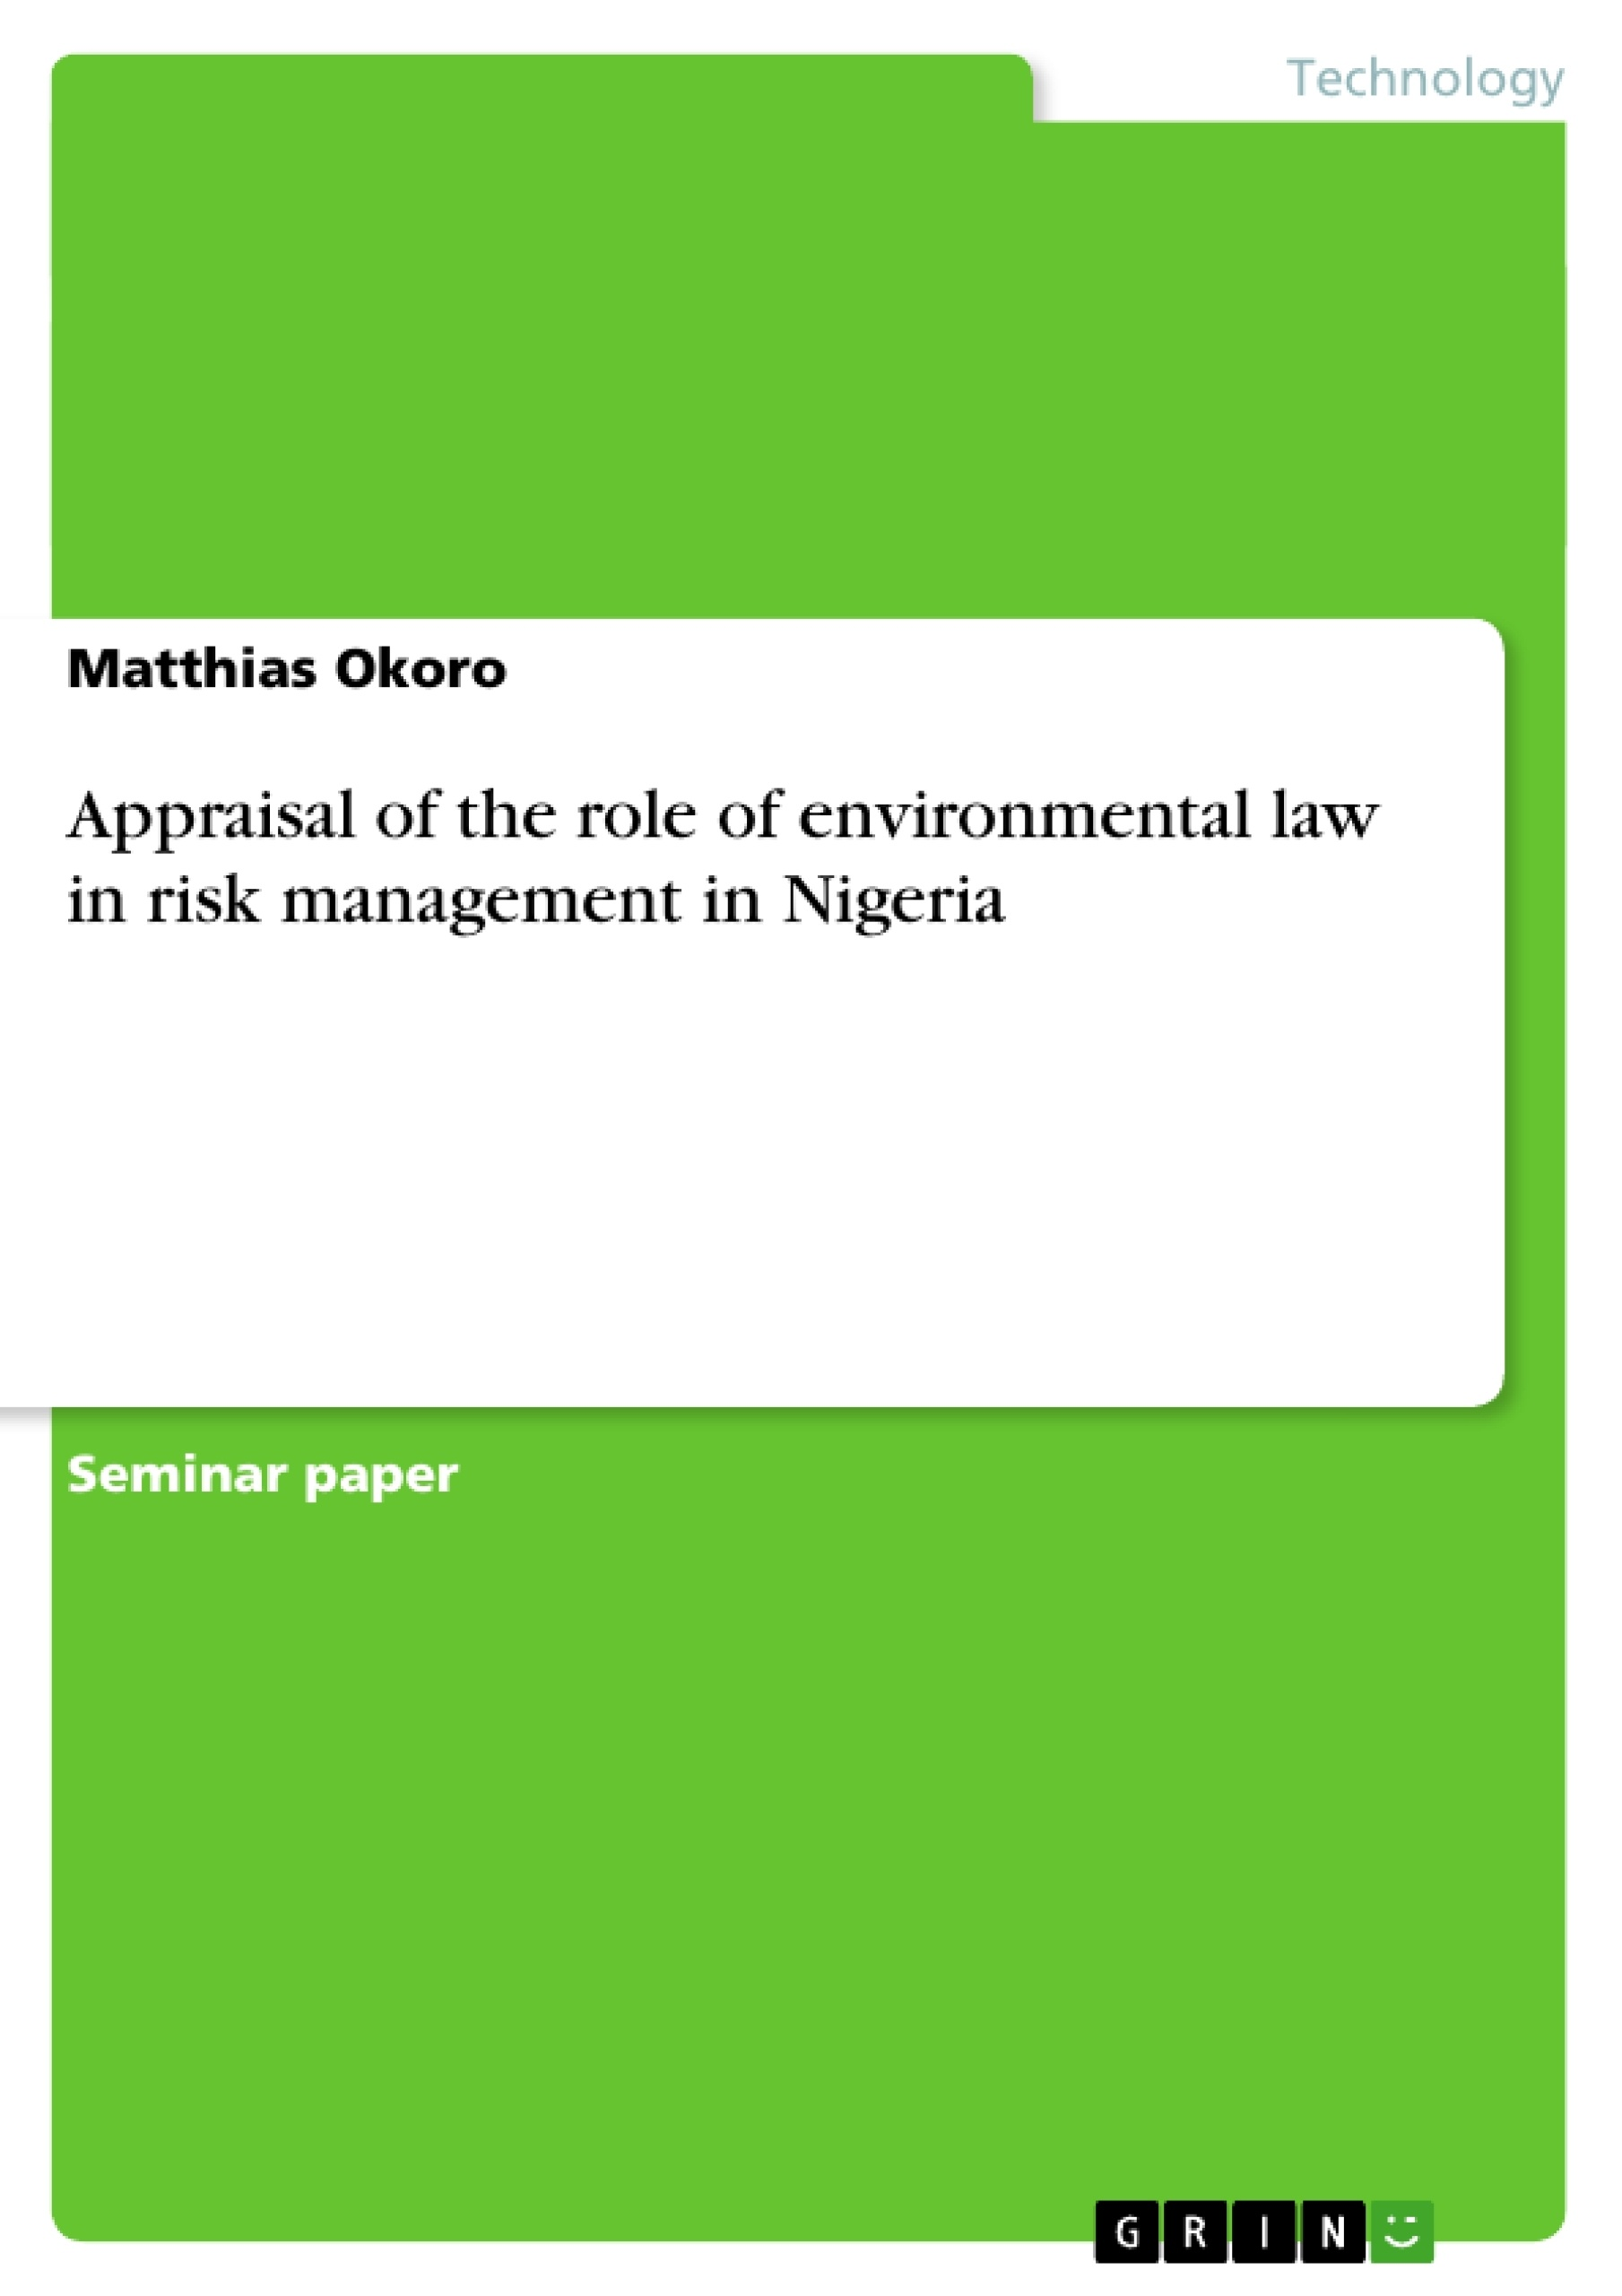 Title: Appraisal of the role of environmental law in risk management in Nigeria